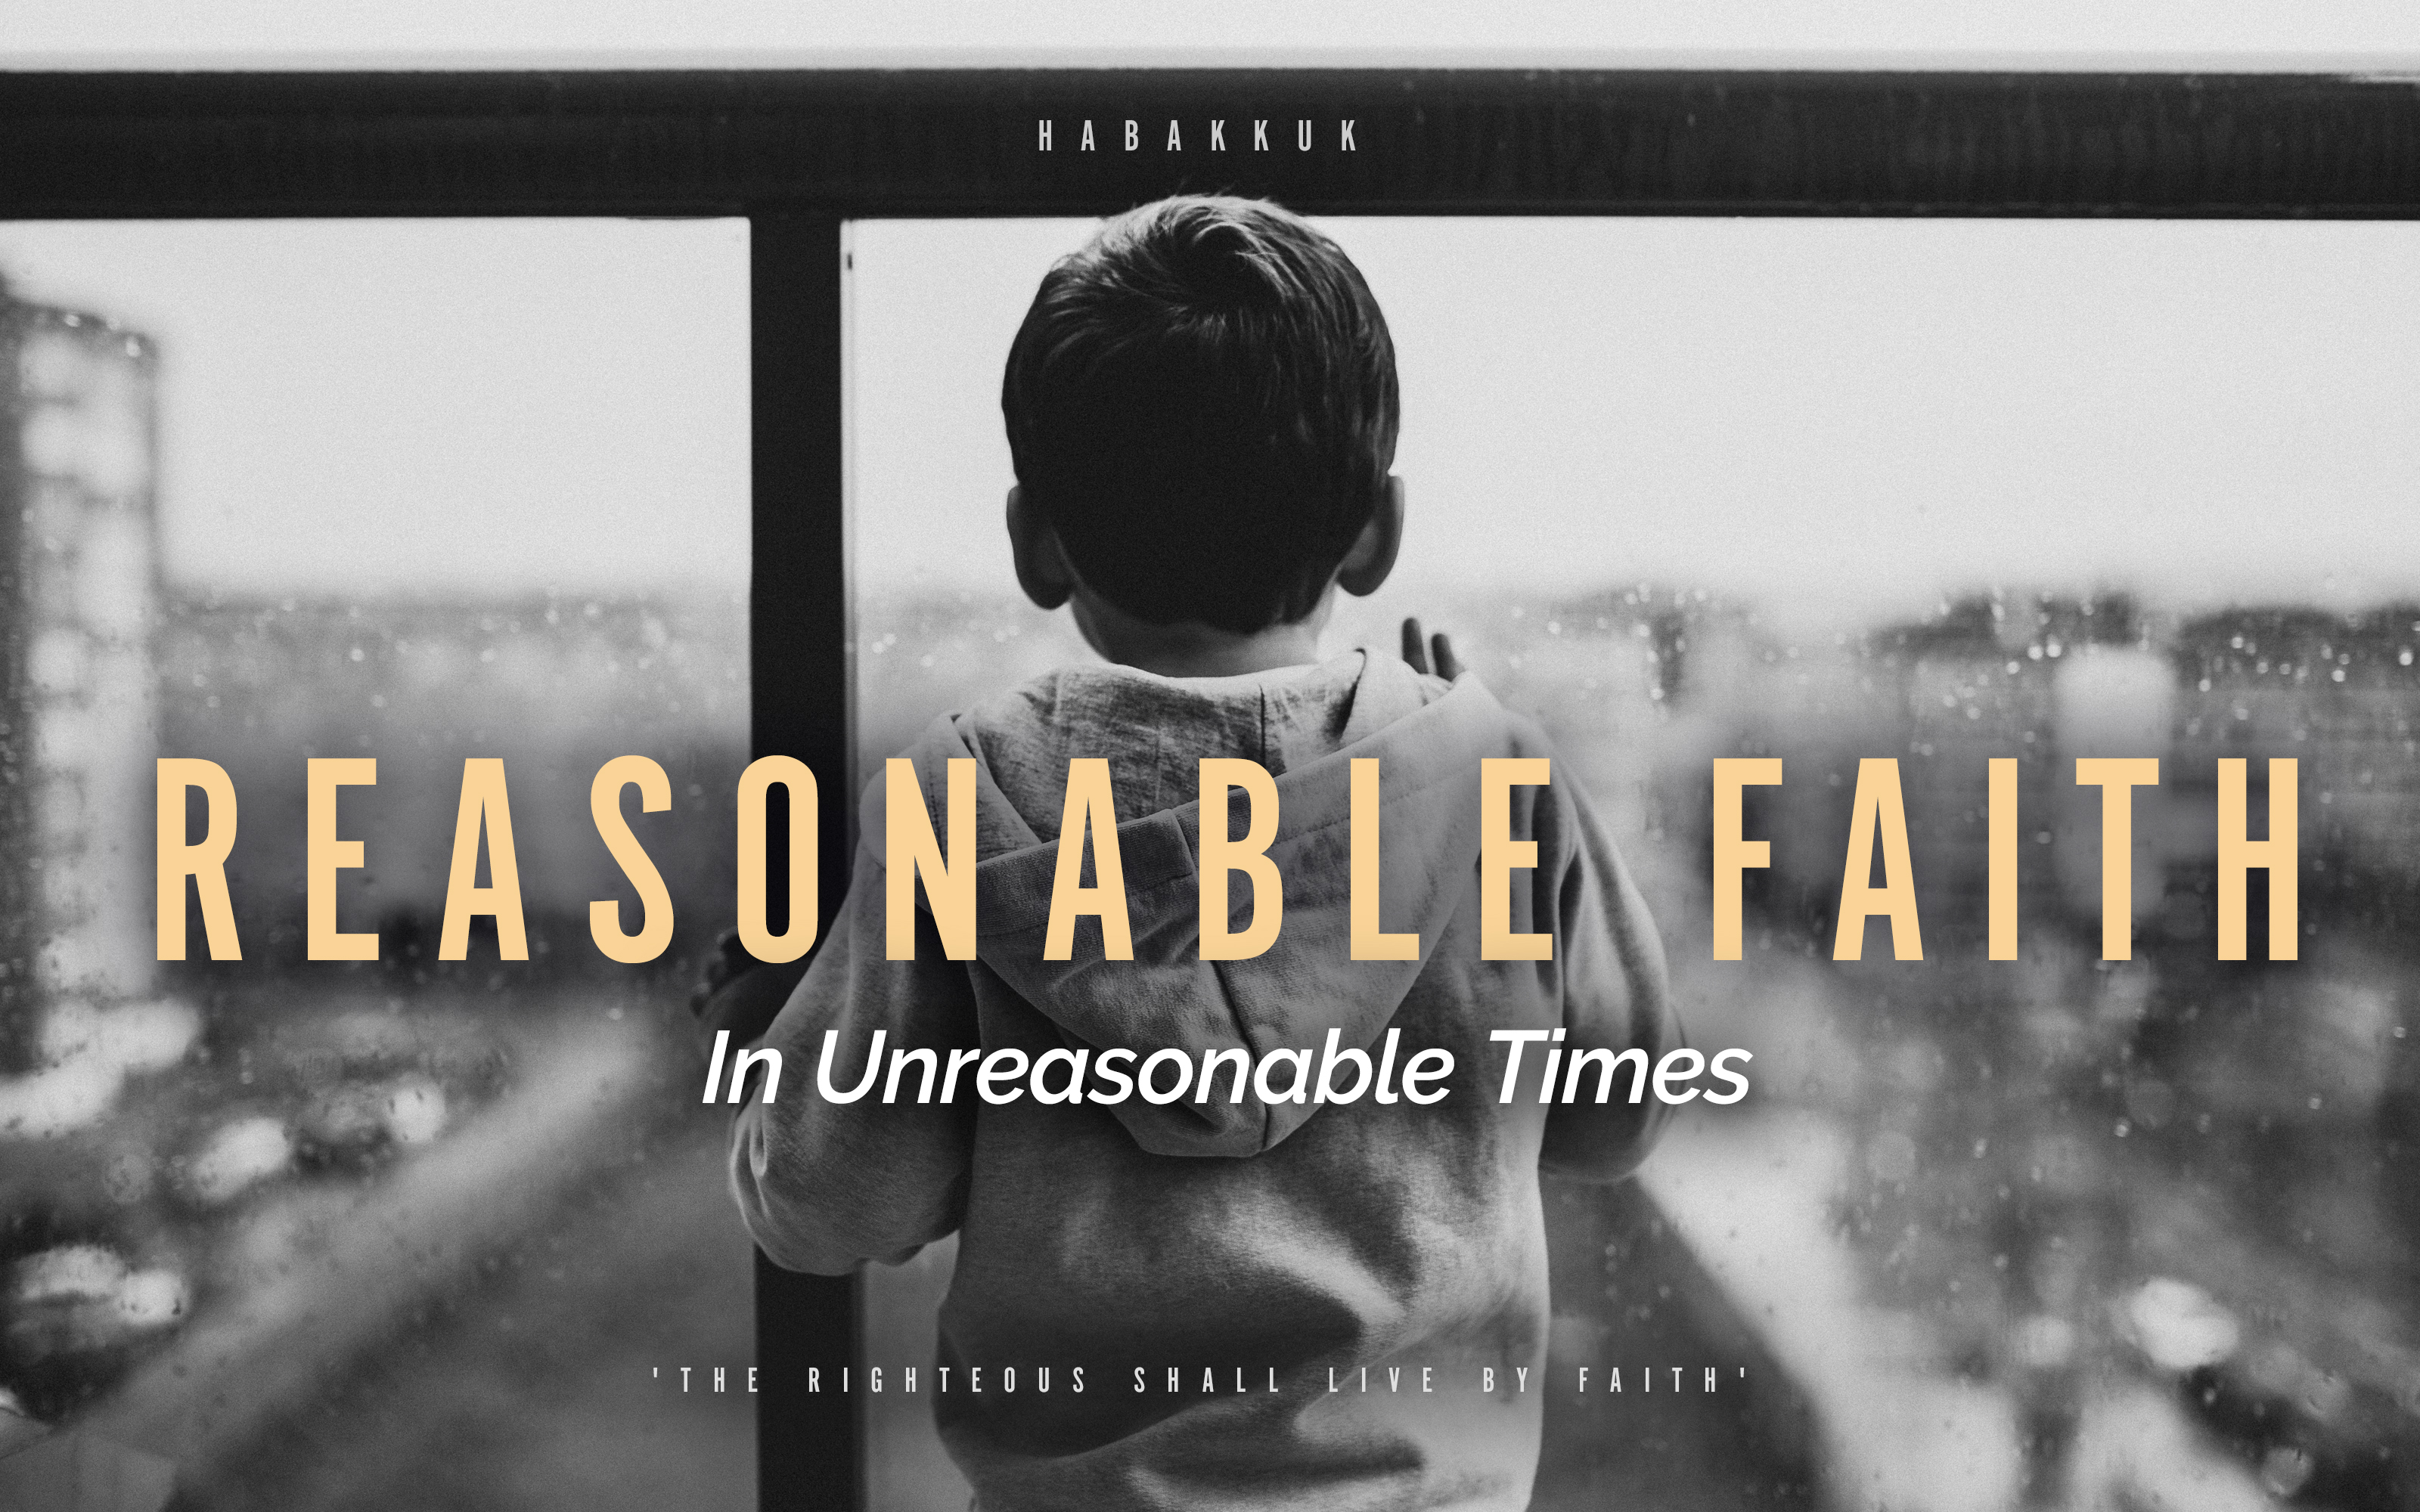 Reasonable Faith in Unreasonable Times - HABAKKUK Rejoicing in the Tough Times